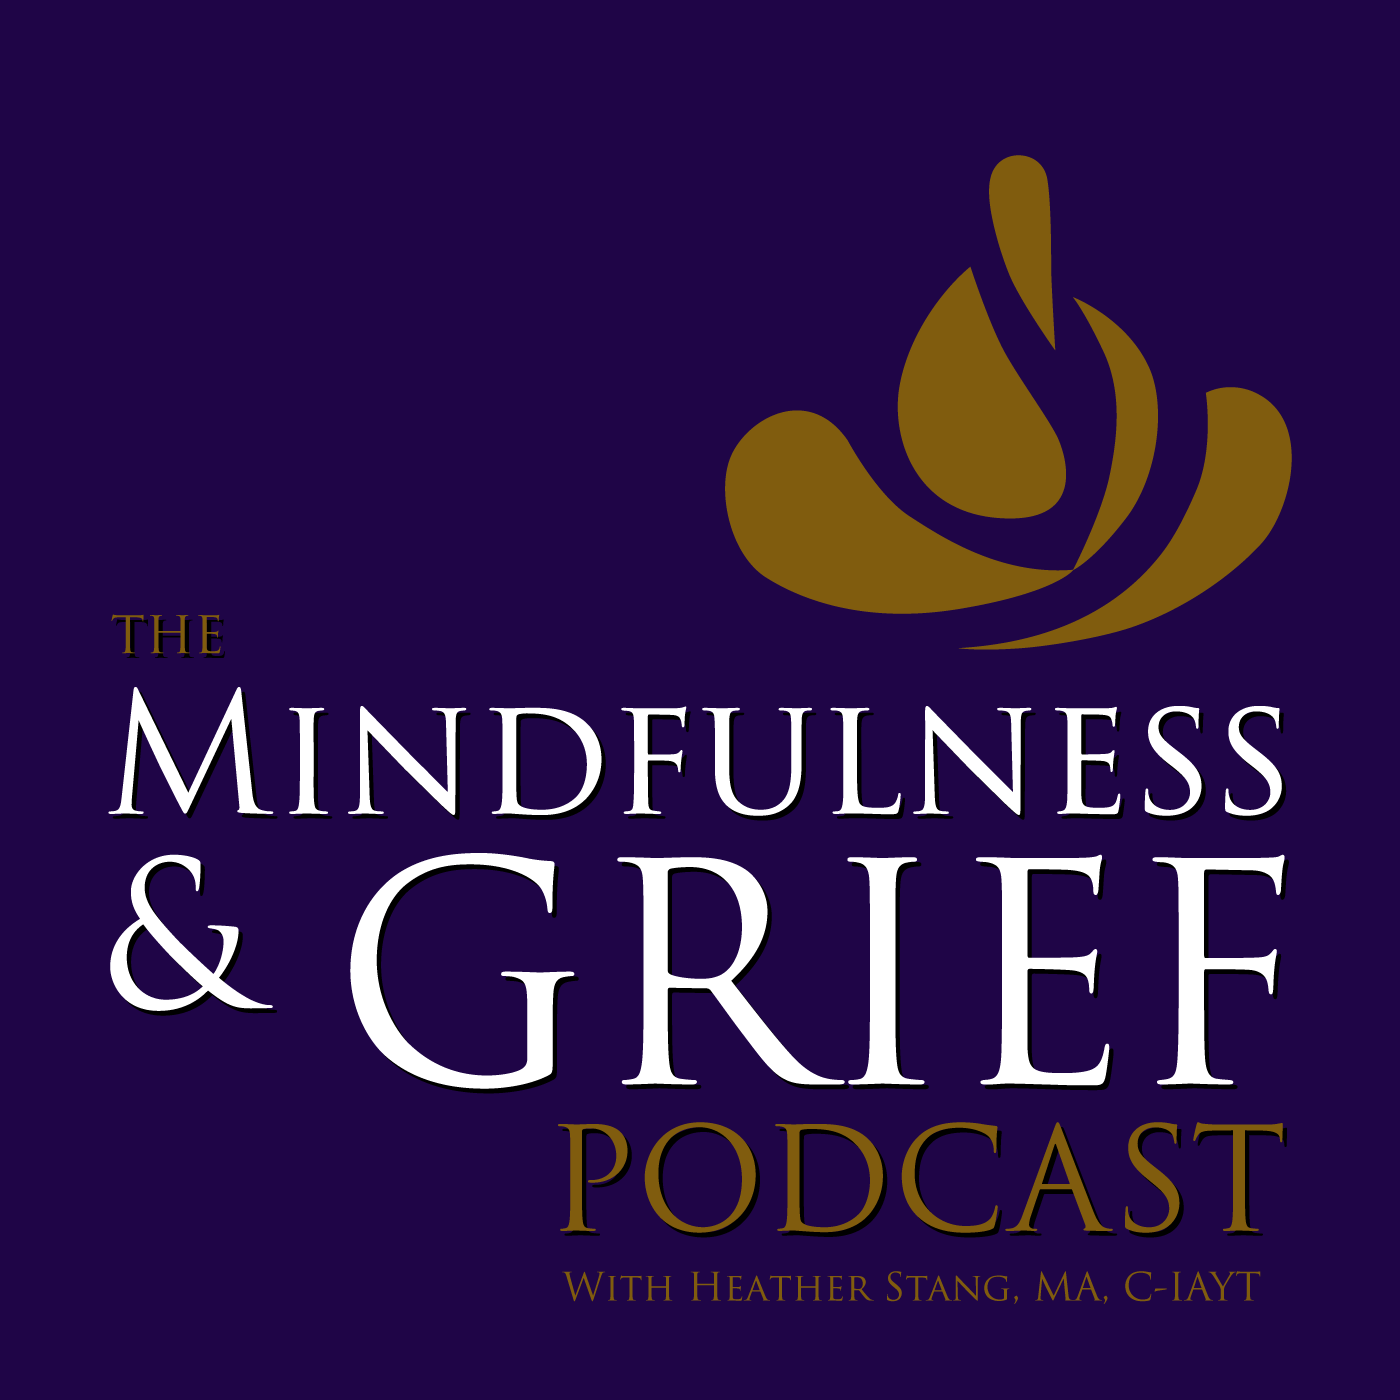 The Mindfulness & Grief Podcast | Listen via Stitcher for Podcasts